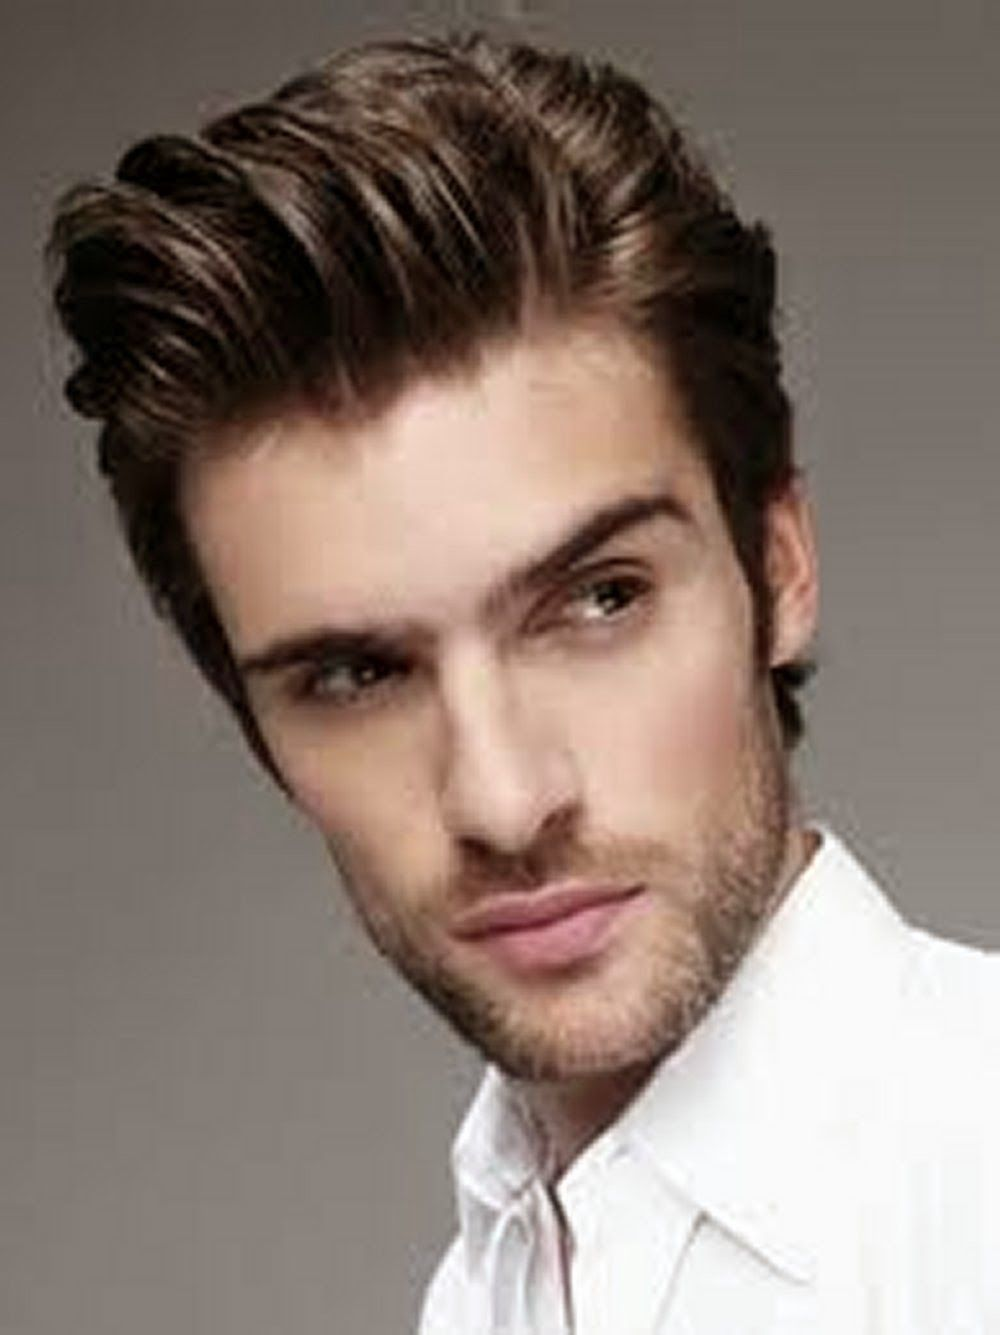 Marvelous 1000 Images About Hair Styles On Pinterest Young Mens Short Hairstyles For Black Women Fulllsitofus